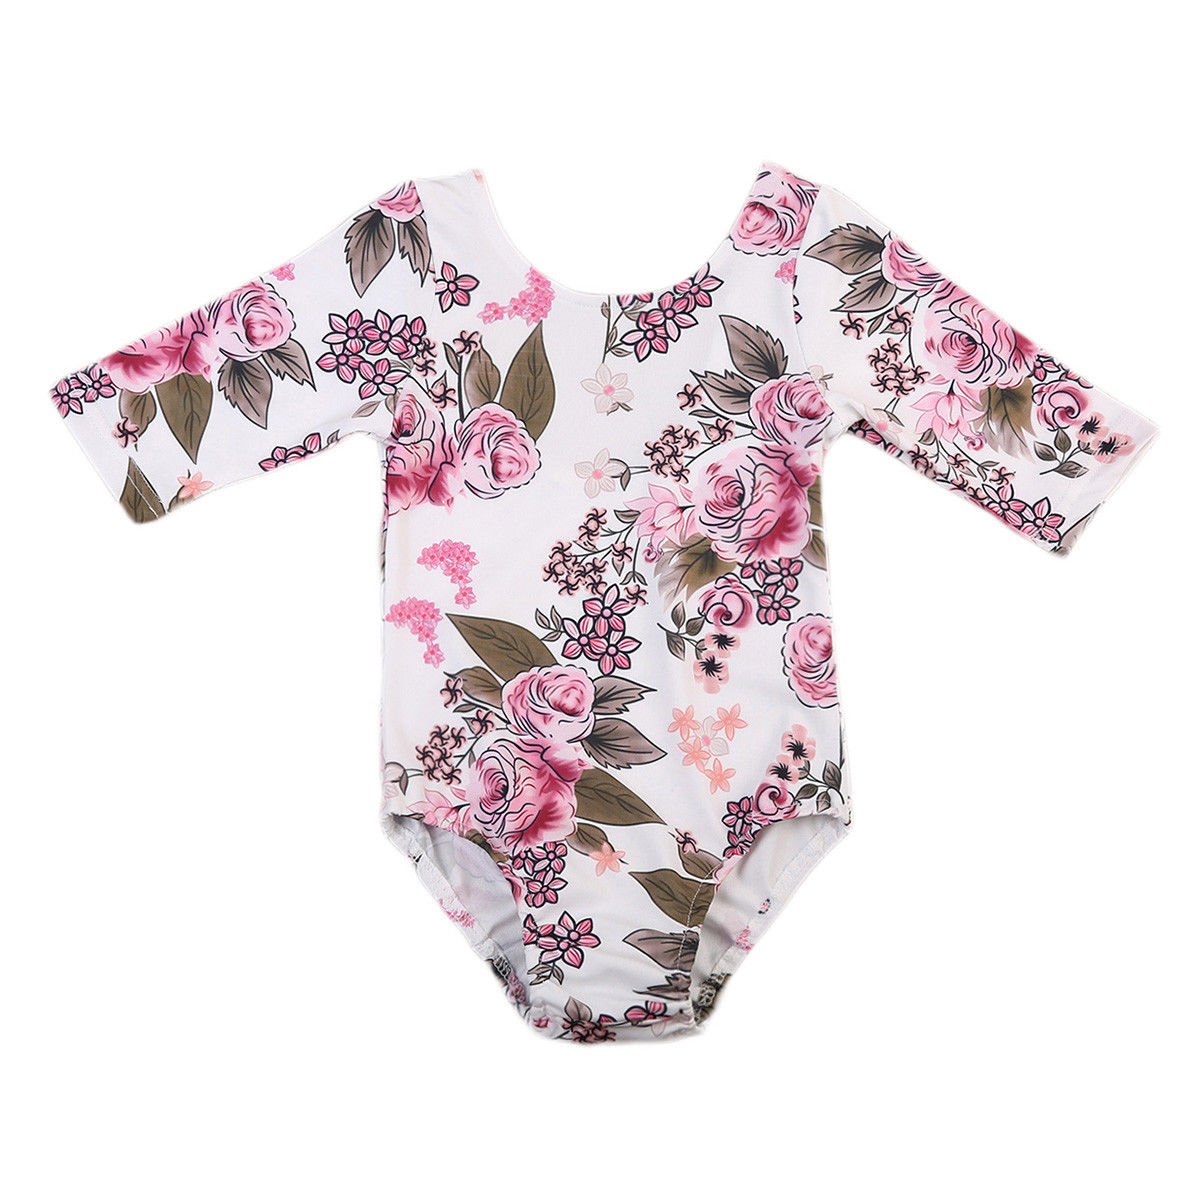 Infant Baby Girls Toddler Long Sleeve Romper Jumpsuit Clothes Outfits Top Newborn Girl Long Sleeve Print Rompers Sunsuits newborn baby girl organic cotton rompers suit clothes infant toddler girls long sleeve one piece cute jumpsuit rompers outfits